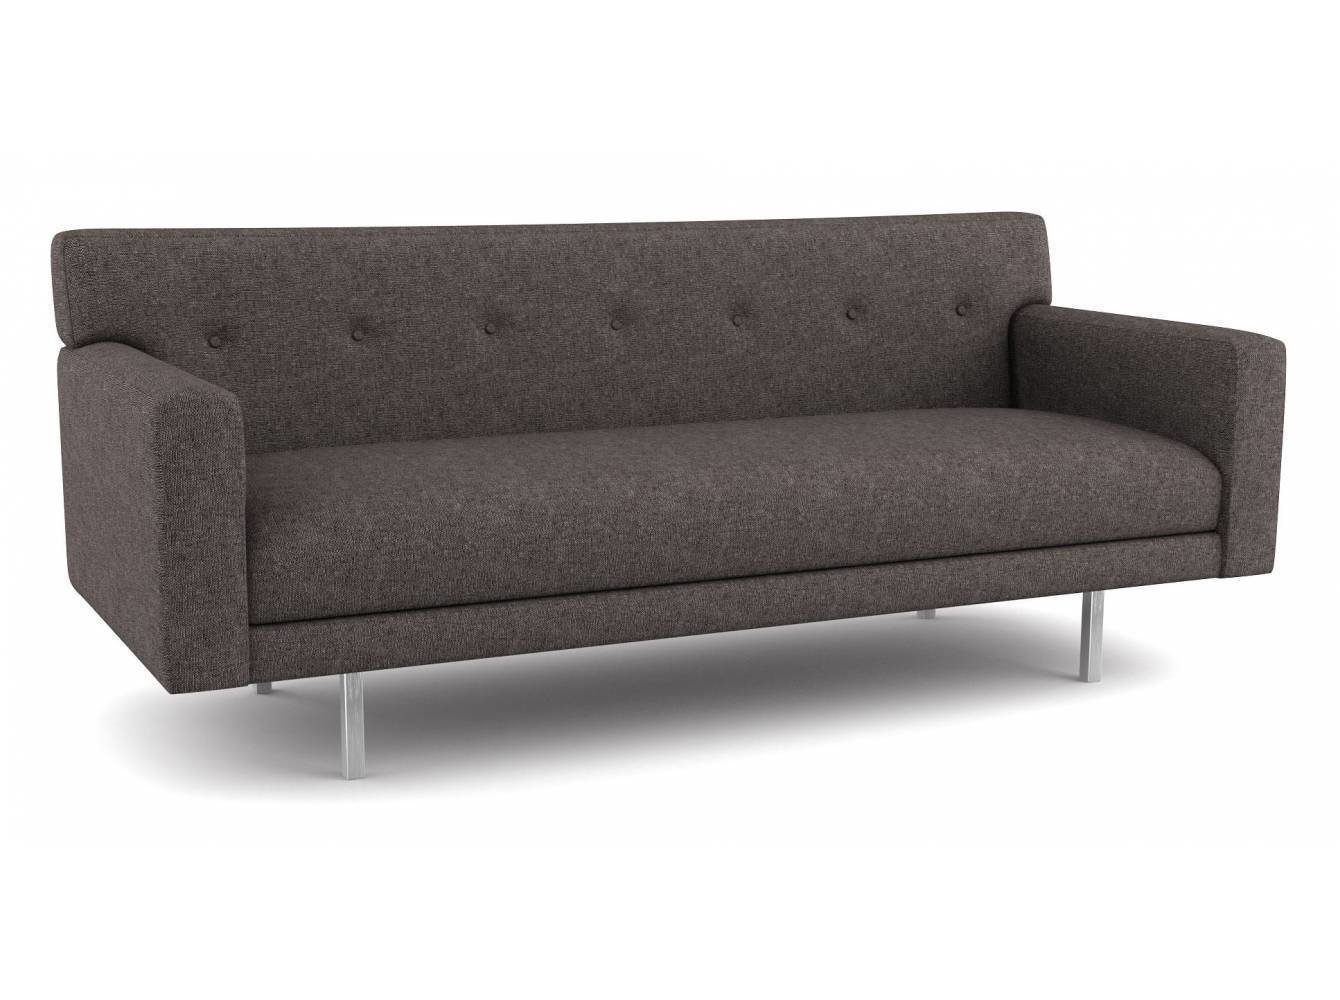 Thanks to its shallow frame, this compact modern sofa fits well into small spaces. It's sophisticated, retro design comes in over 2,000 environmentally-friendly fabric options—or you have the option to provide your own.  Photo 5 of 12 in 10 Functional Pieces For Small Space Living